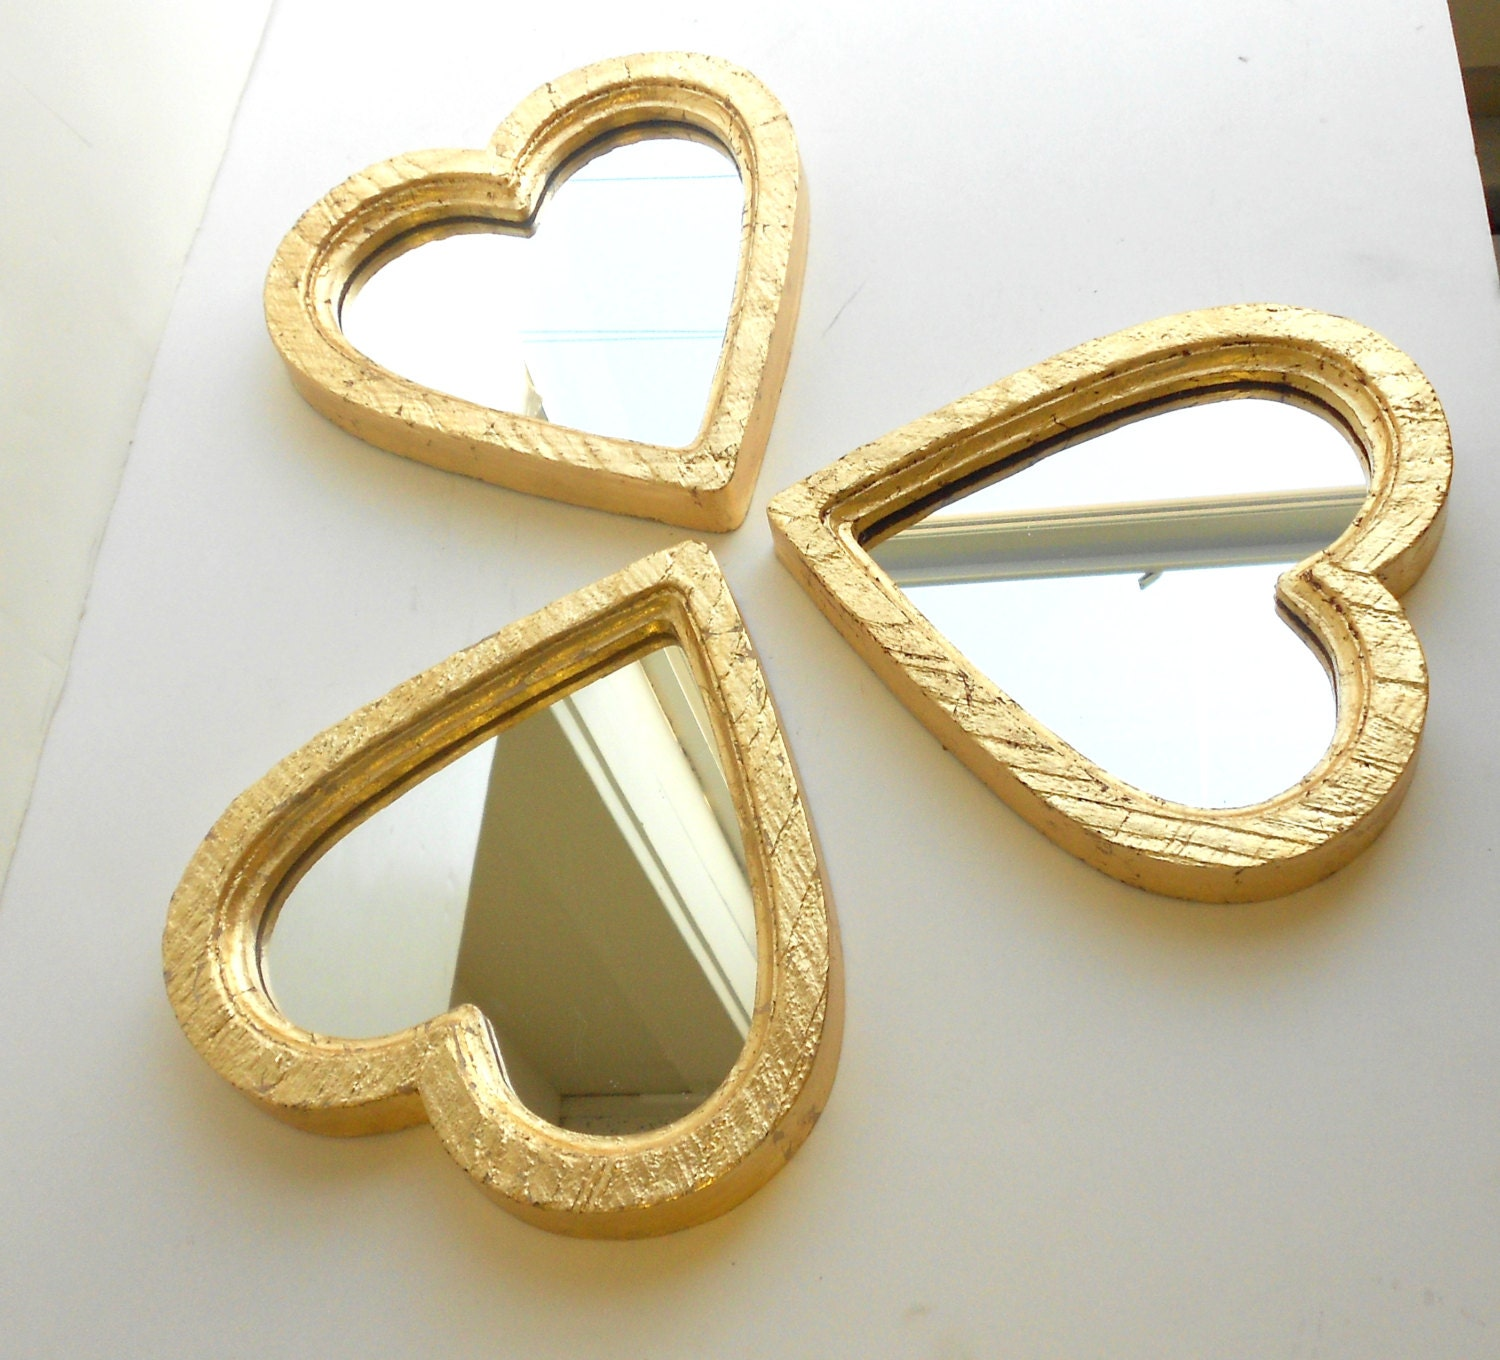 X Mirrors Gold Heart Mirrors Decorative - Decorative gold mirrors